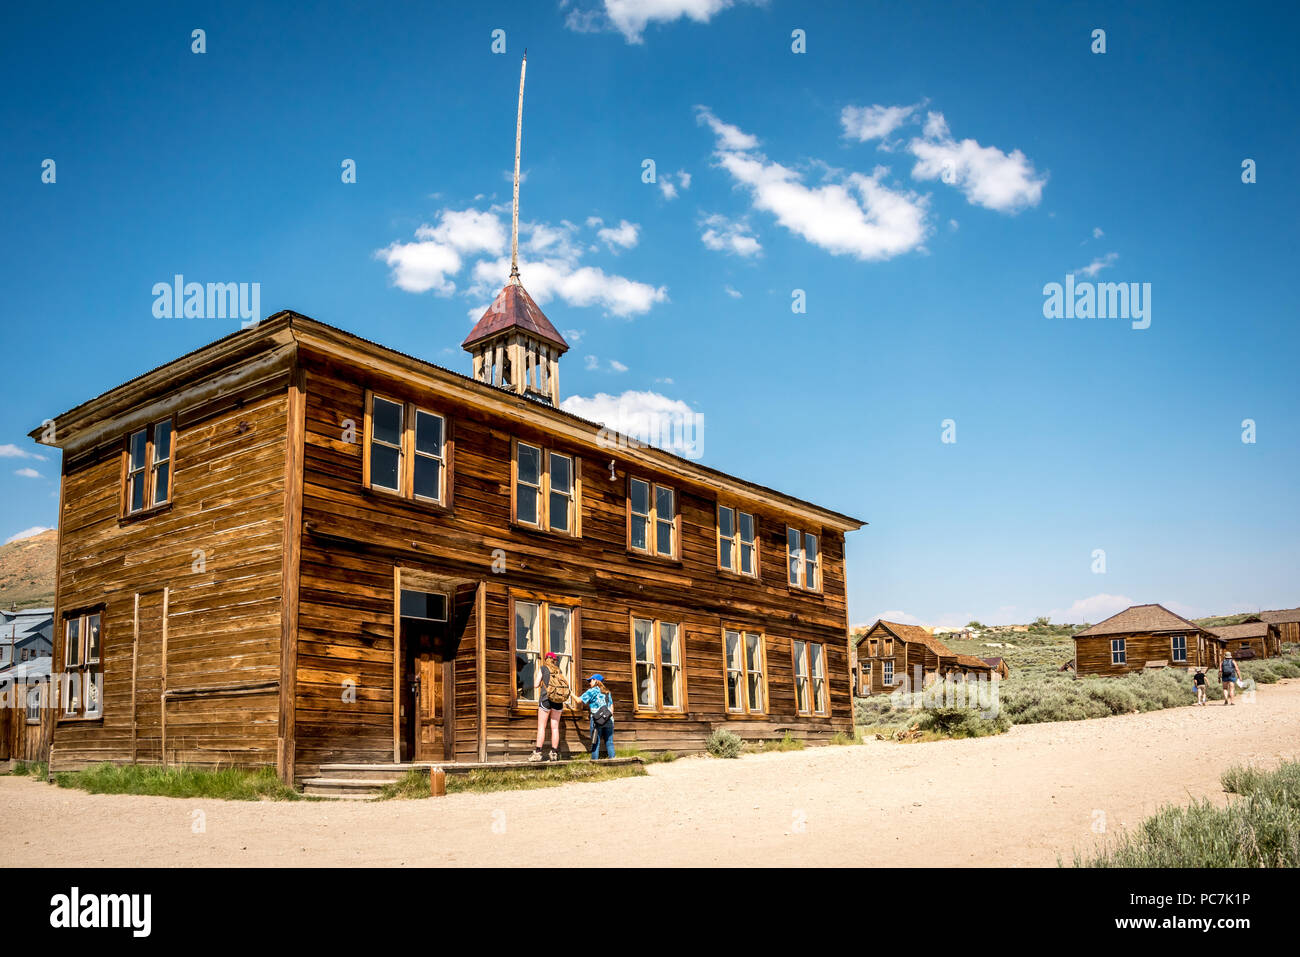 Tourists peer into an old abandoned school building in Bodie, California State Historic Park, which once was a mining boom town in the eastern Sierra - Stock Image